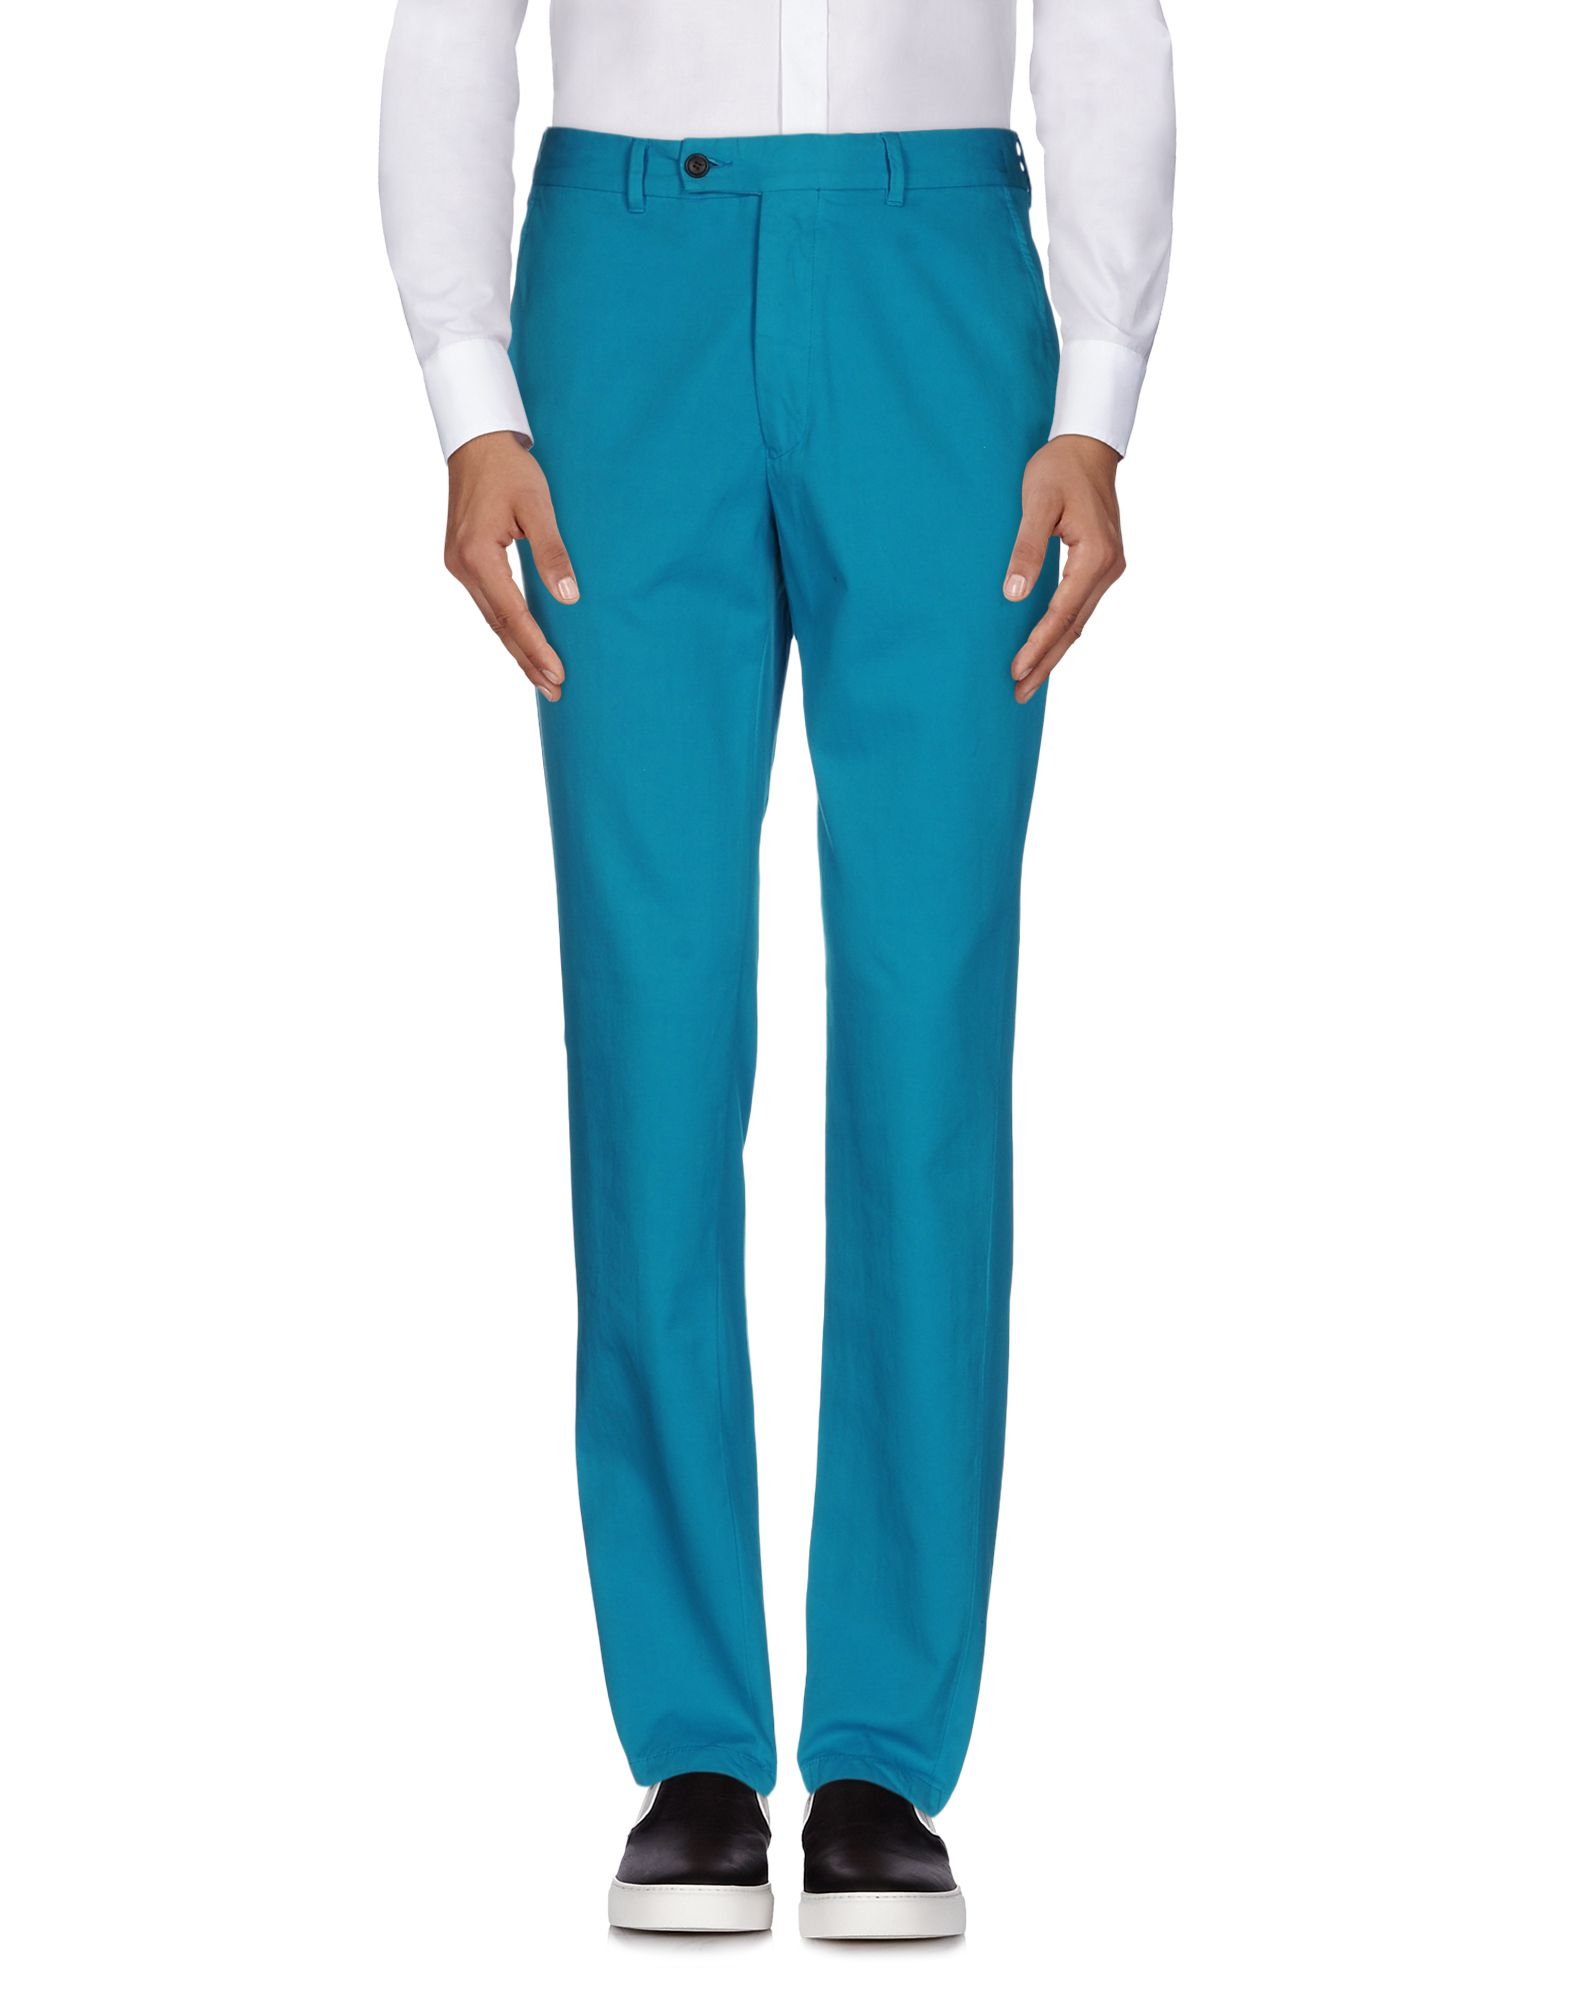 HENTSCH MAN Casual Pants in Turquoise